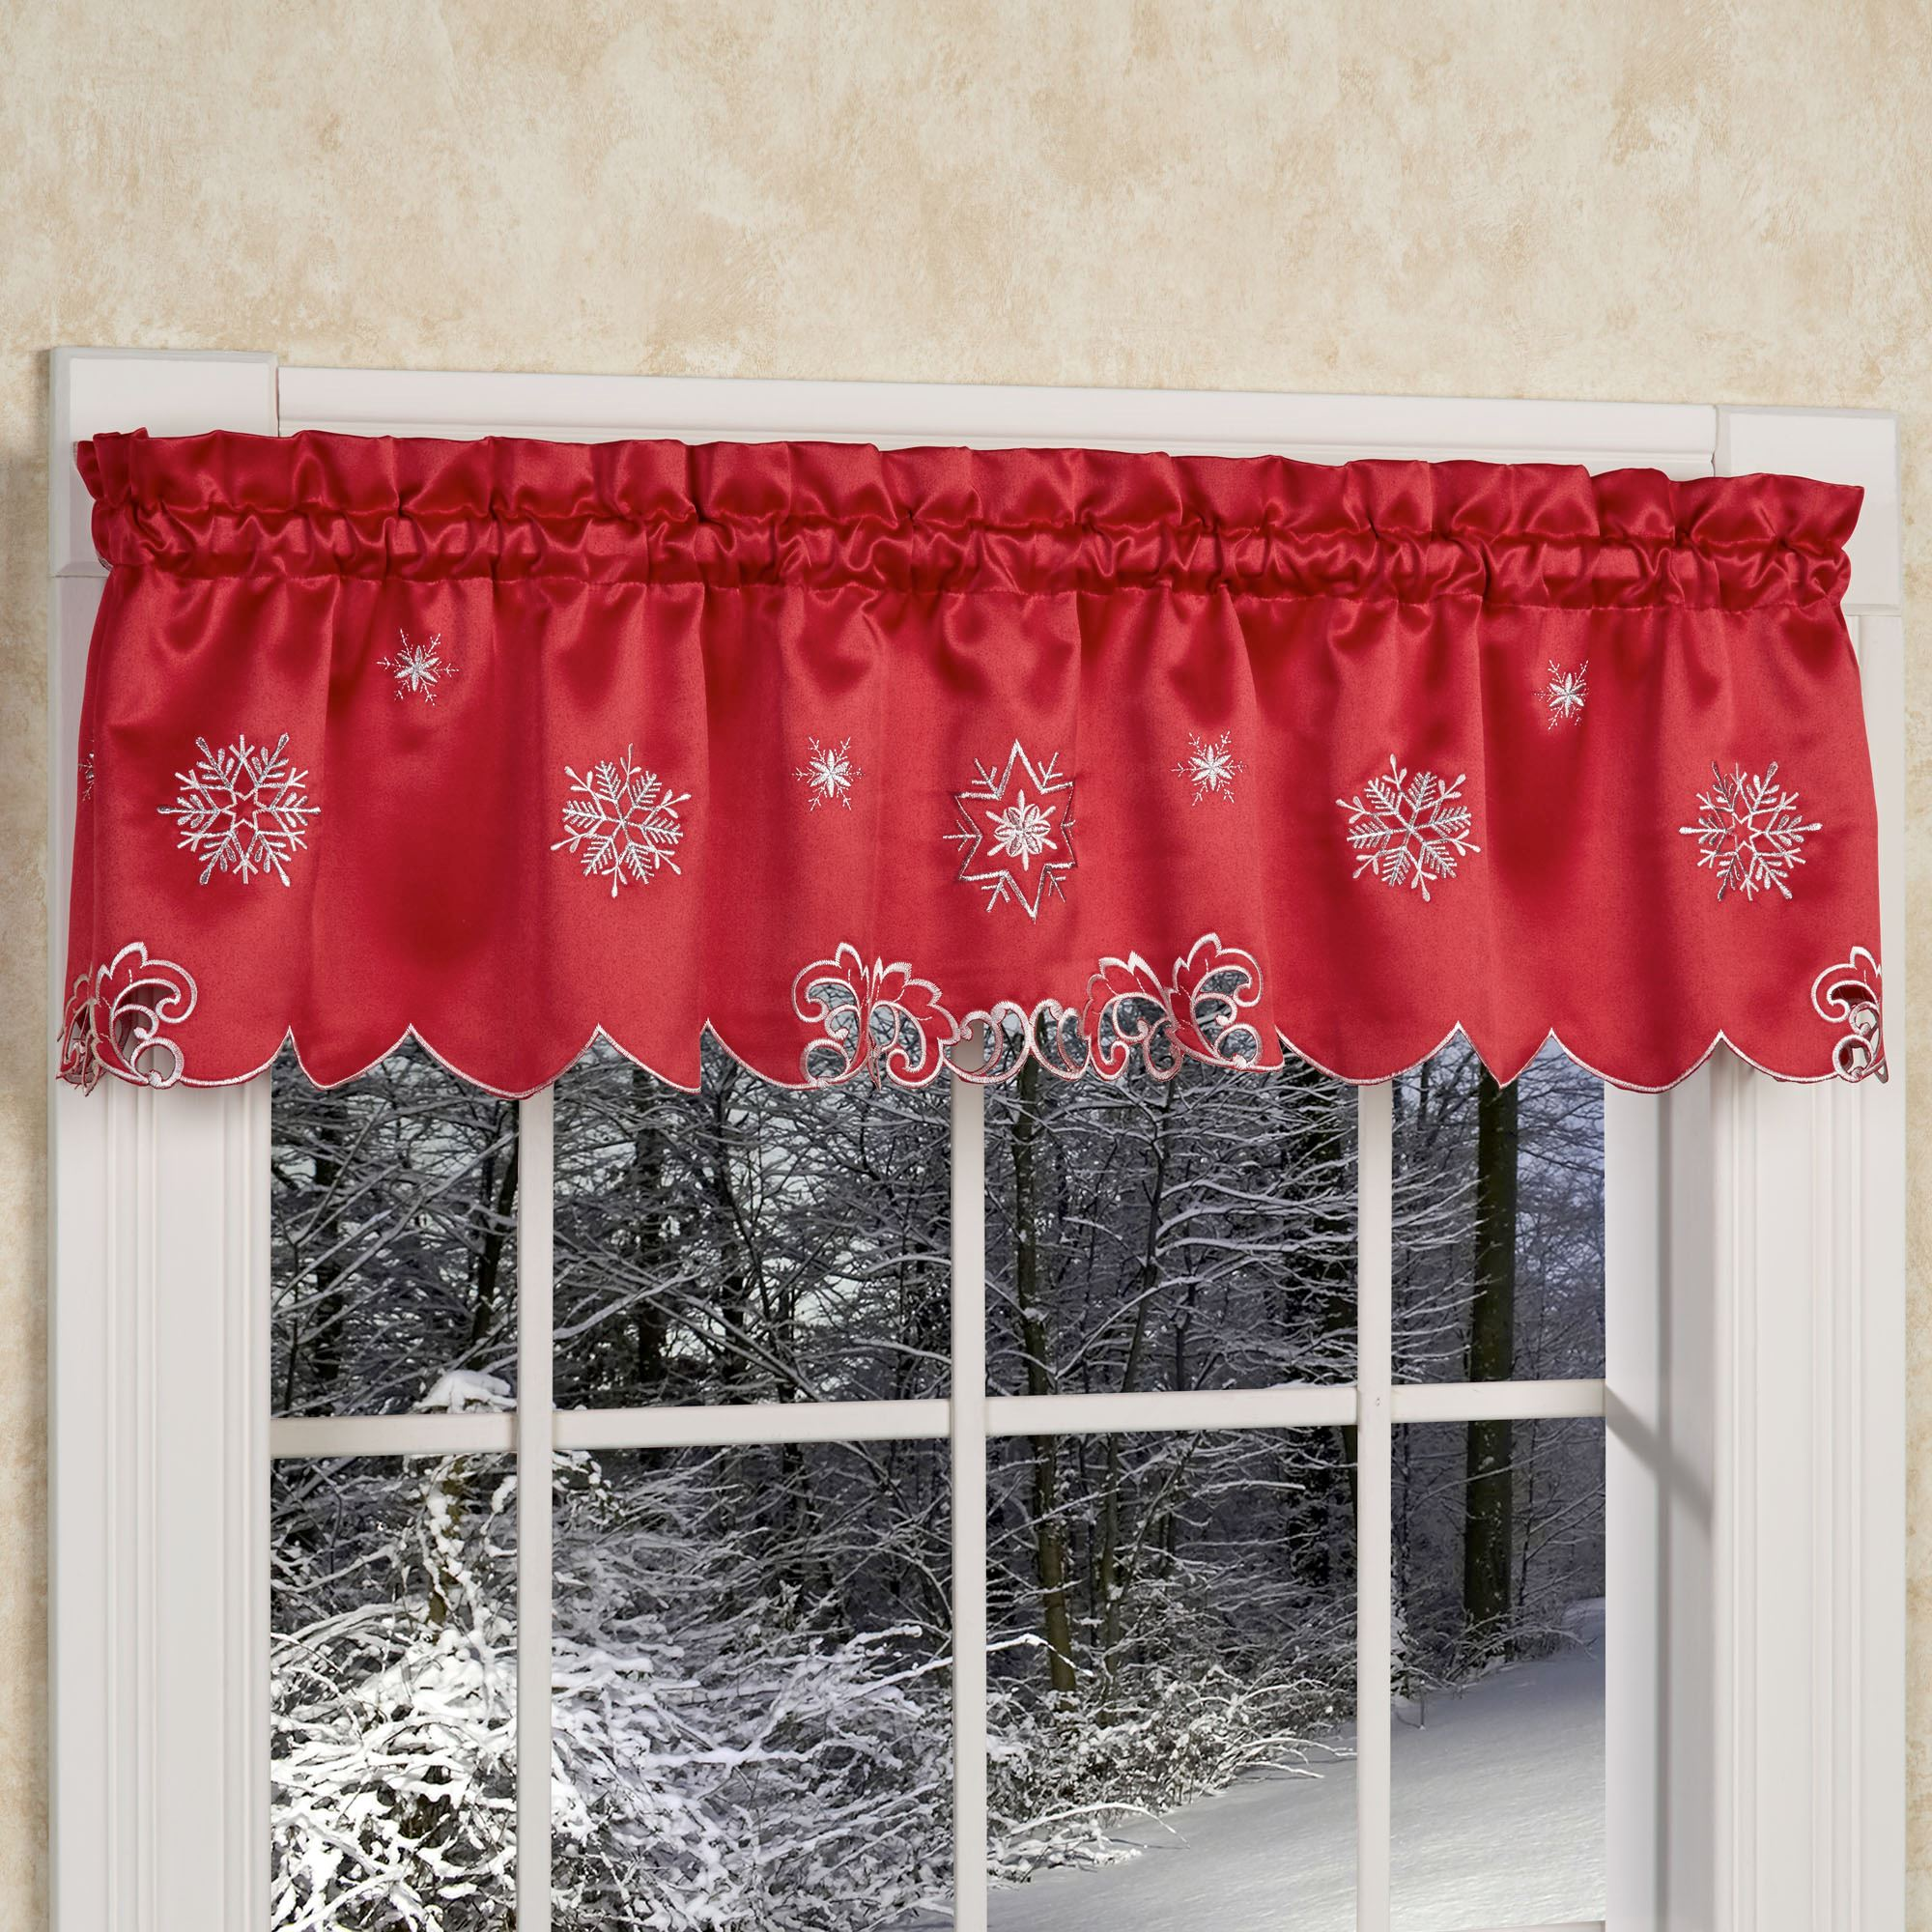 Metallic Snowflake Red Holiday Tier Window Treatment